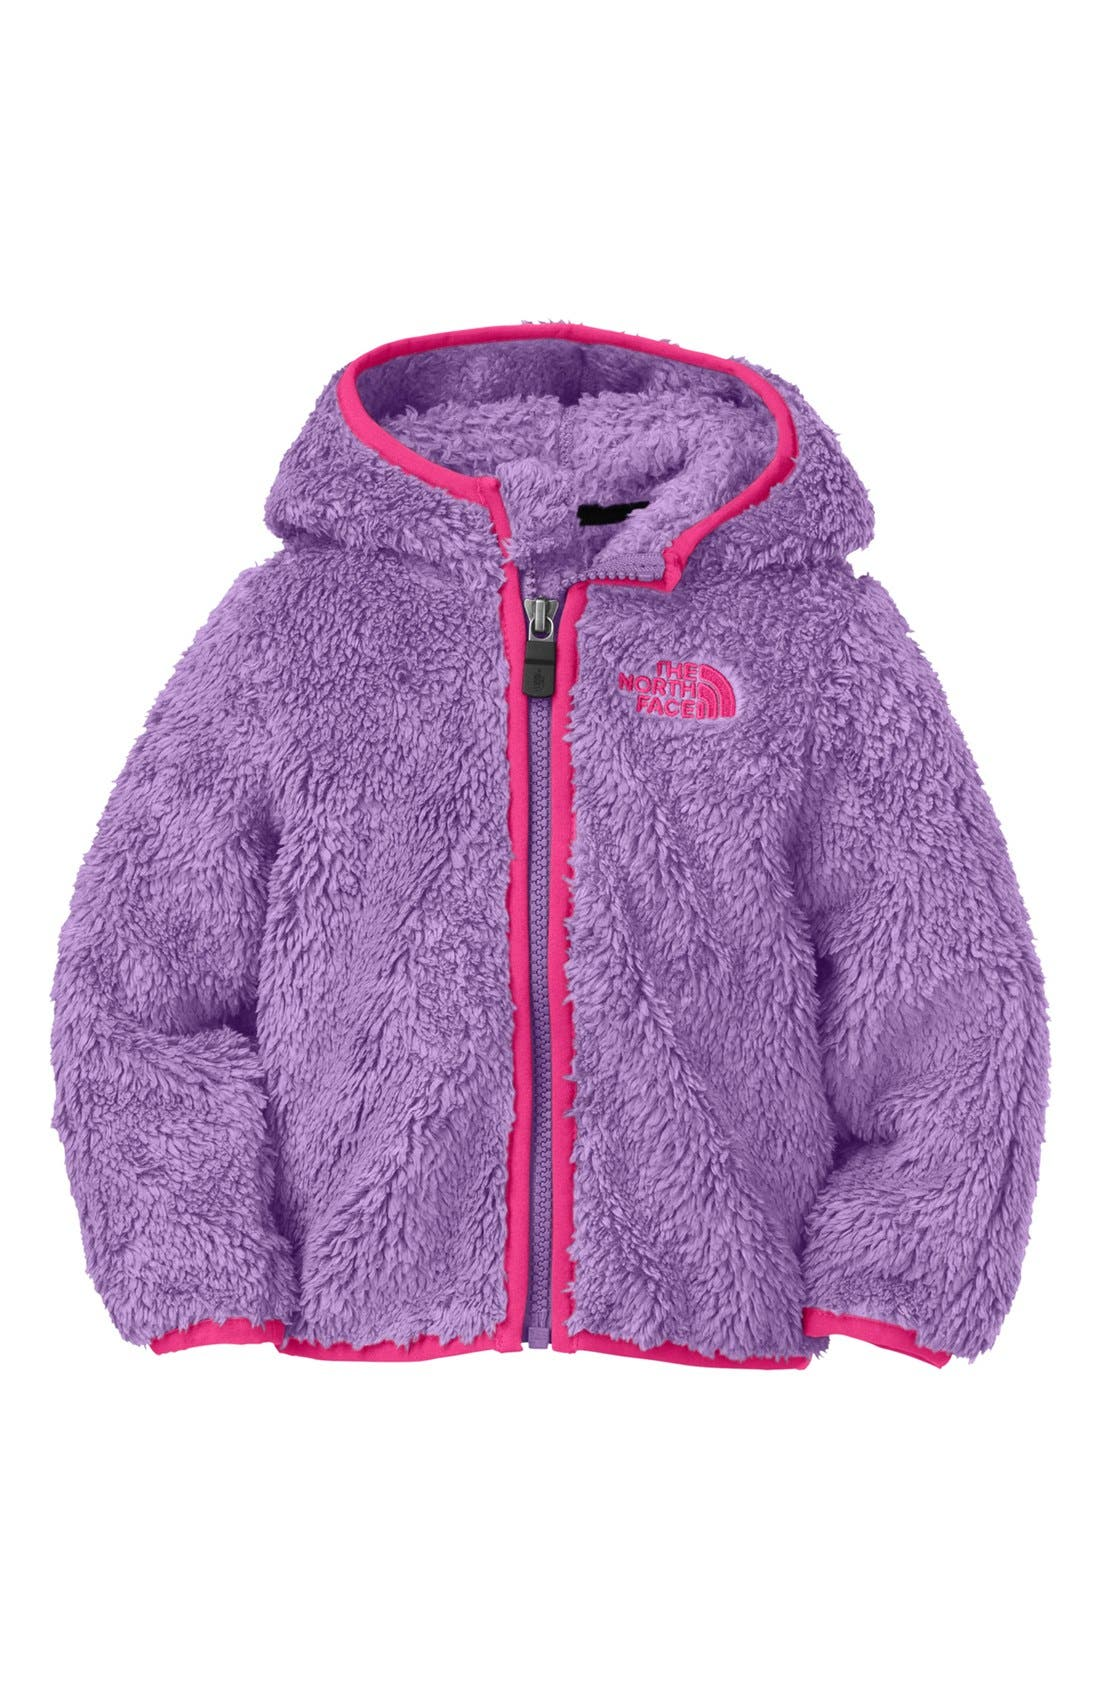 Main Image - The North Face 'Plushee' Fleece Jacket (Baby Girls)